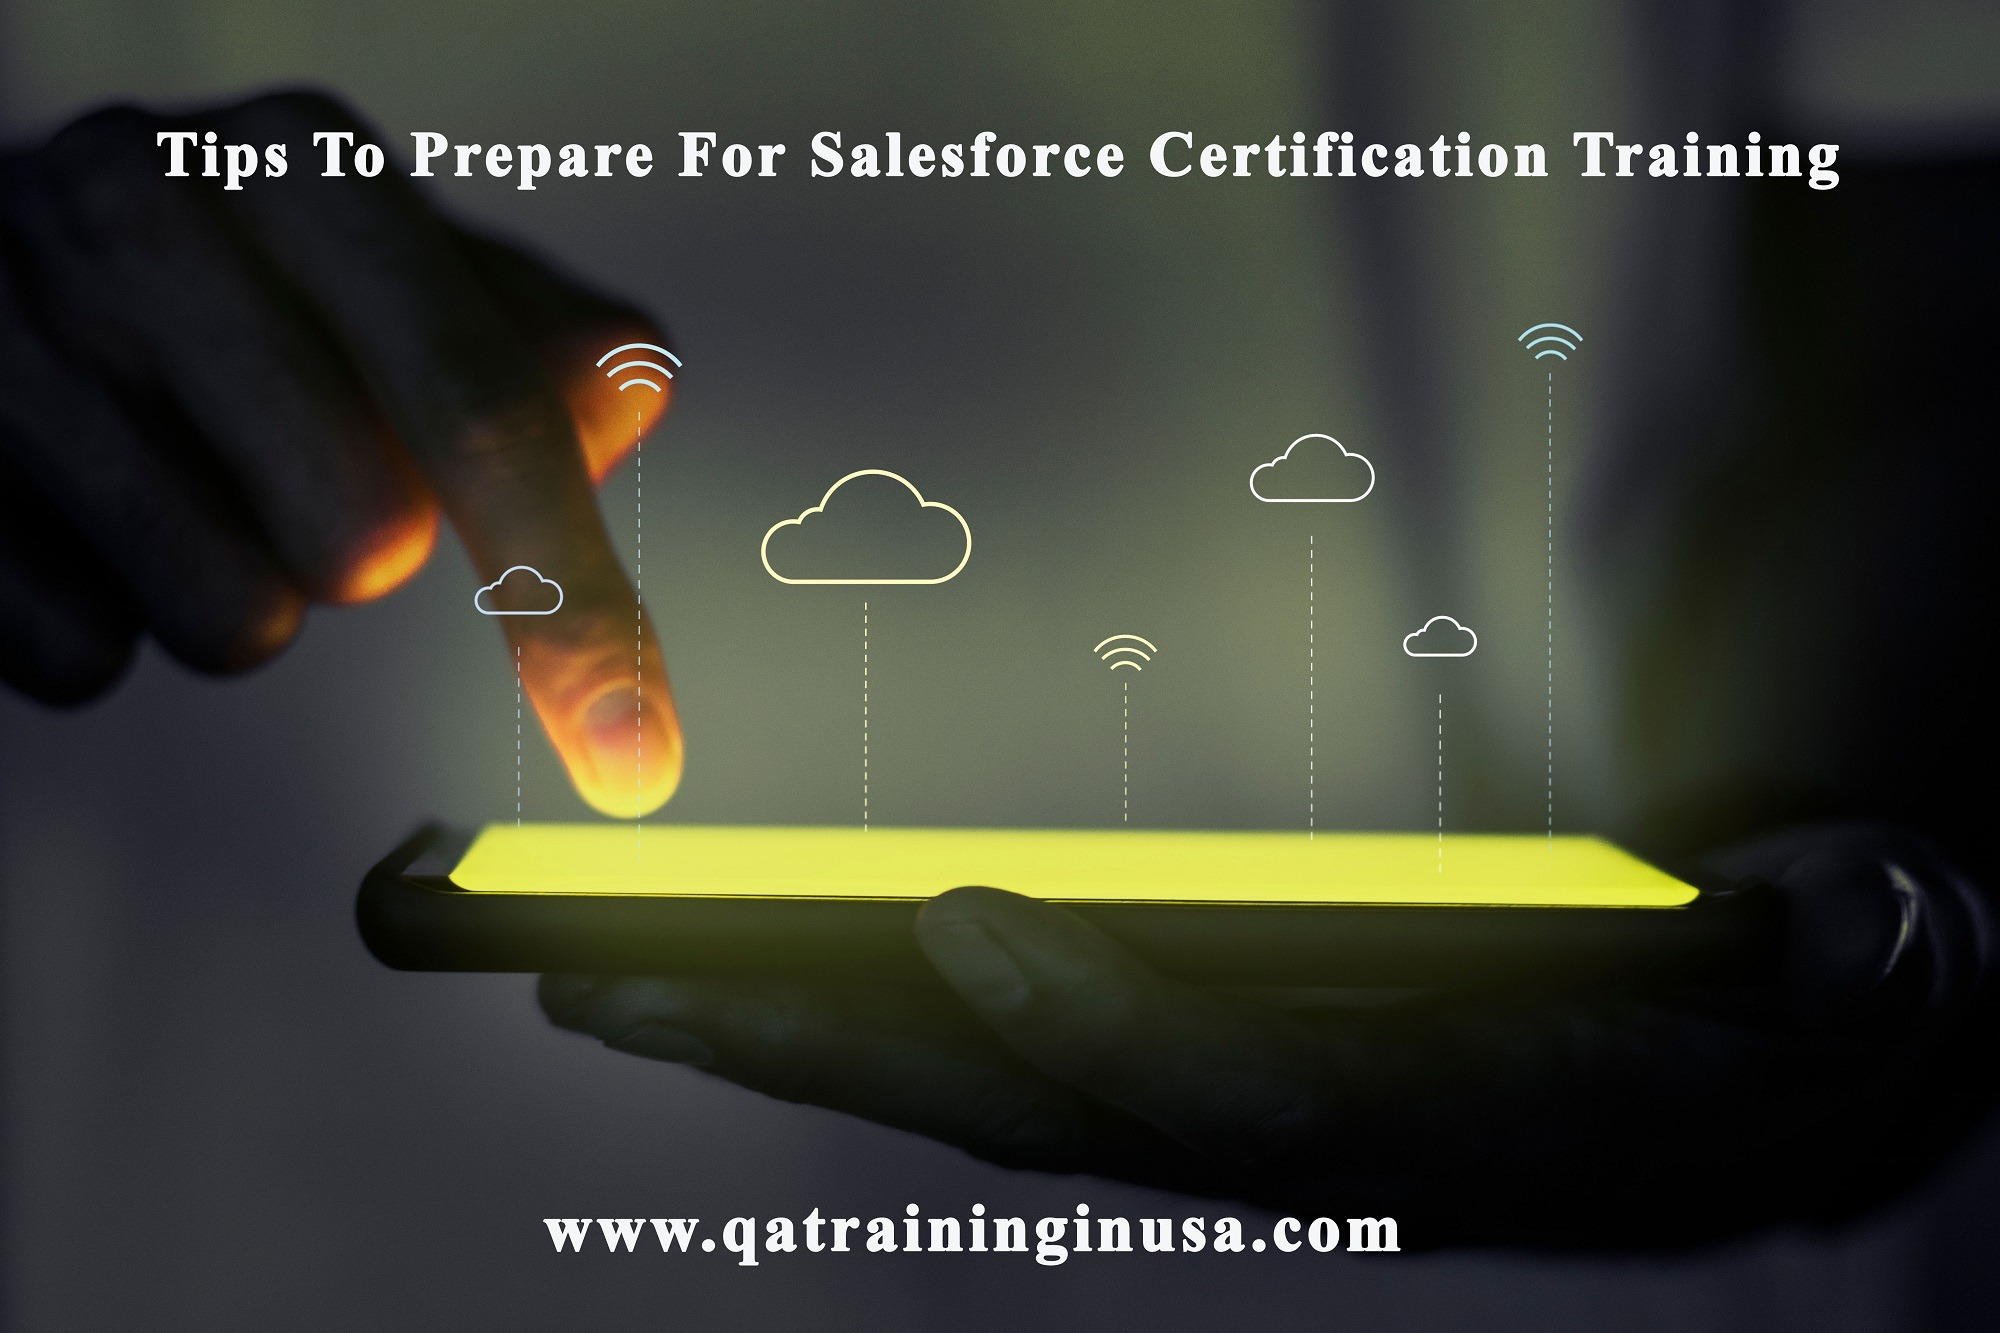 Tips To Prepare For Salesforce Certification Training